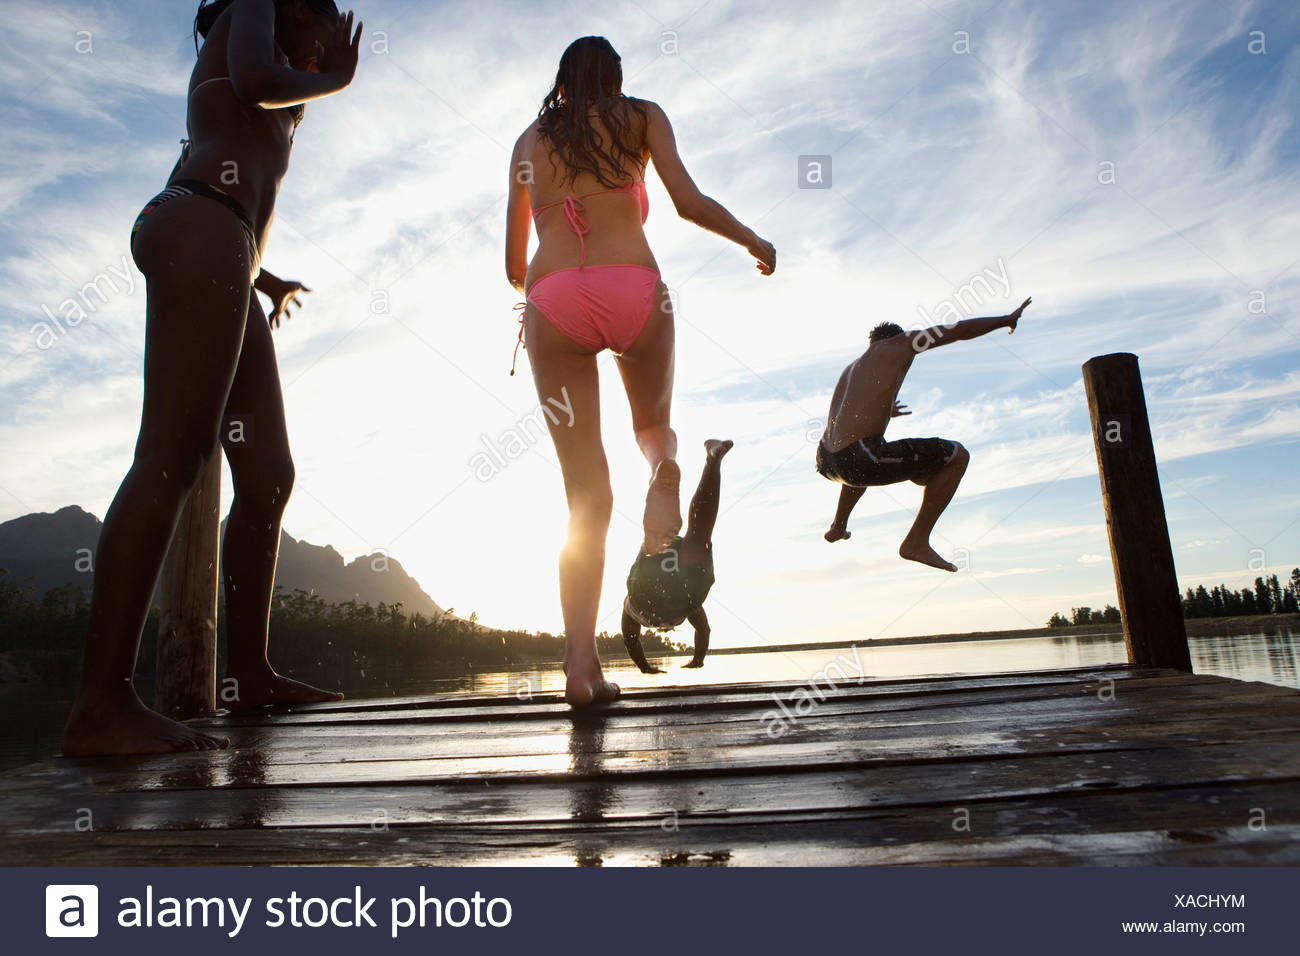 Four young adults in swimwear jumping from jetty into lake at sunset rear view surface level - Stock Image